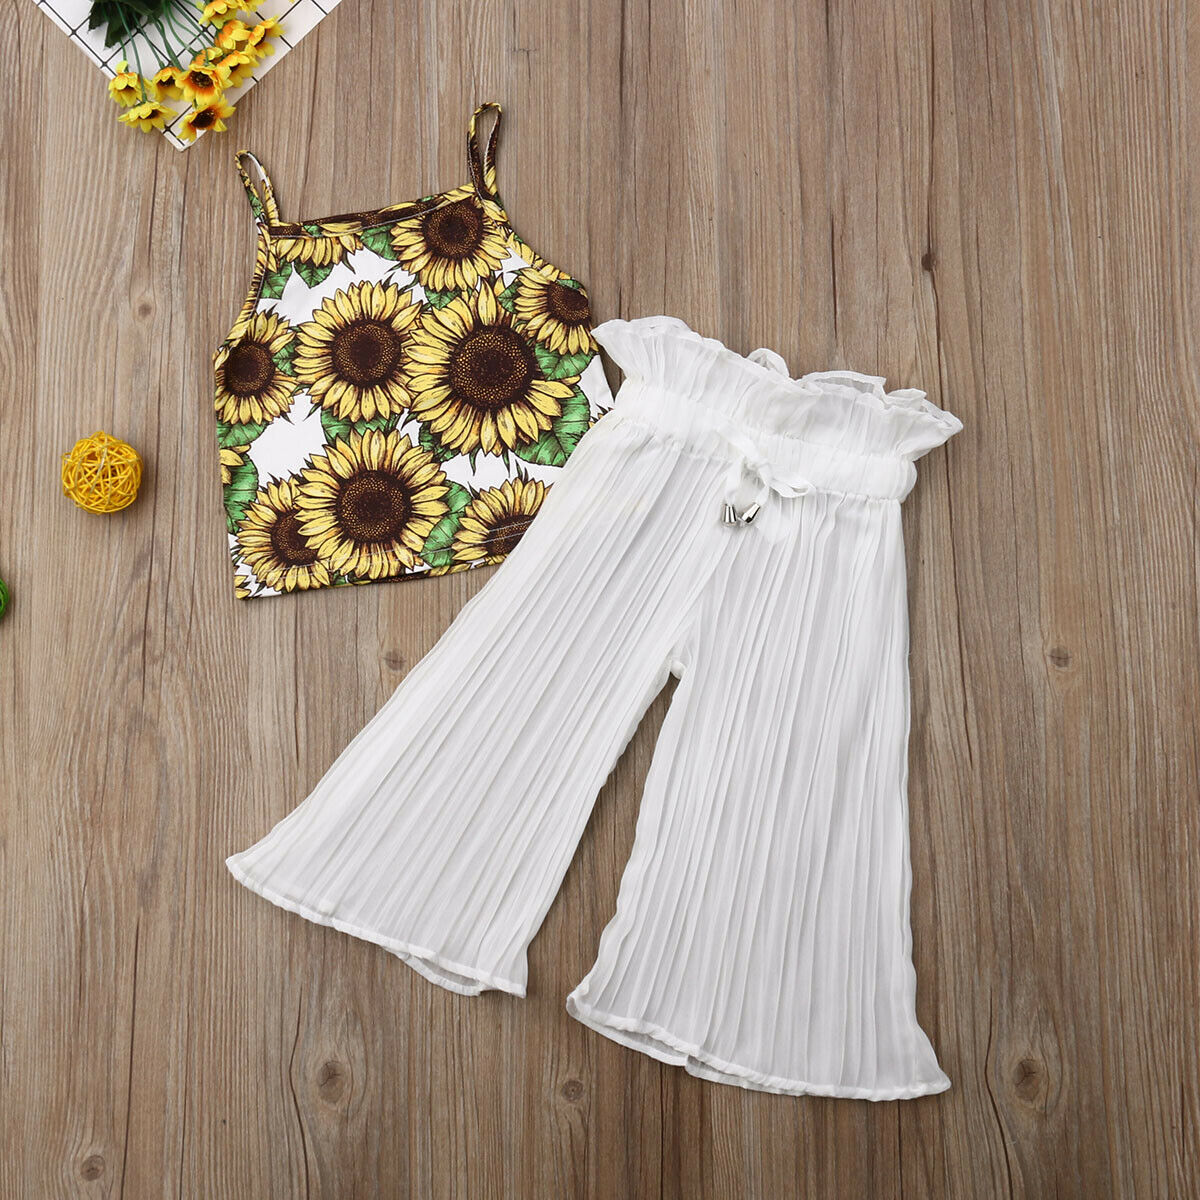 2 7Years Toddler Kid Baby Girls Clothing Set Sunflower Vest Ruffles Chiffon Pants Outfits Summer Beach Holiday Child Costumes in Clothing Sets from Mother Kids